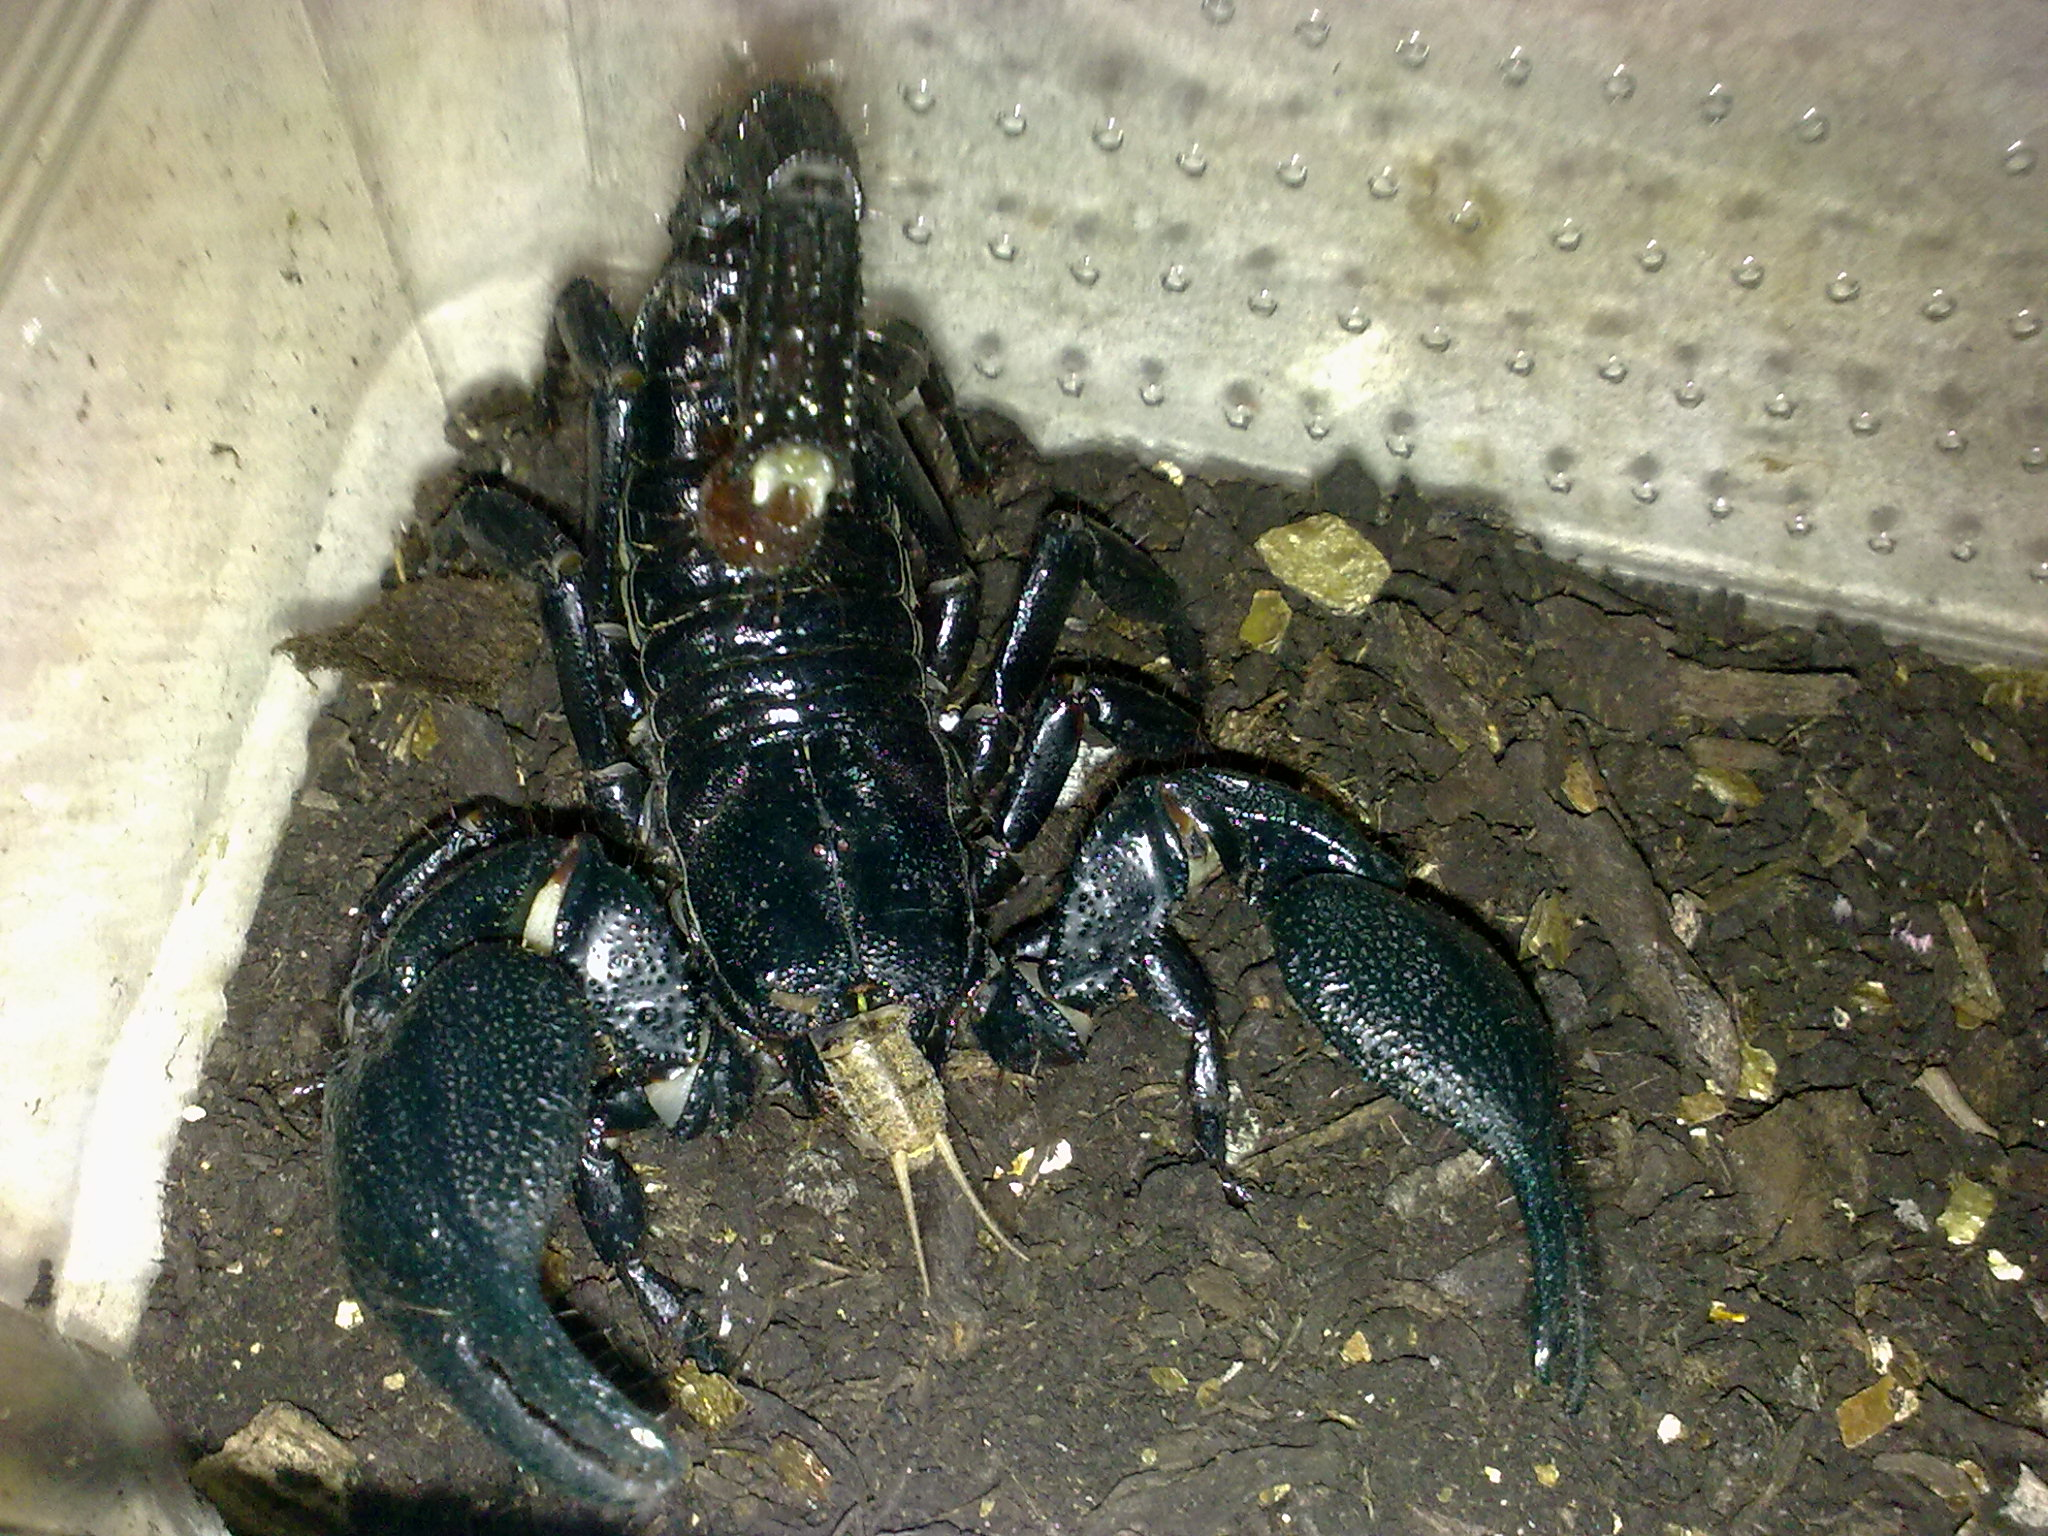 Asian Forest Scorpion CB (Heterometrus spinifer) Image